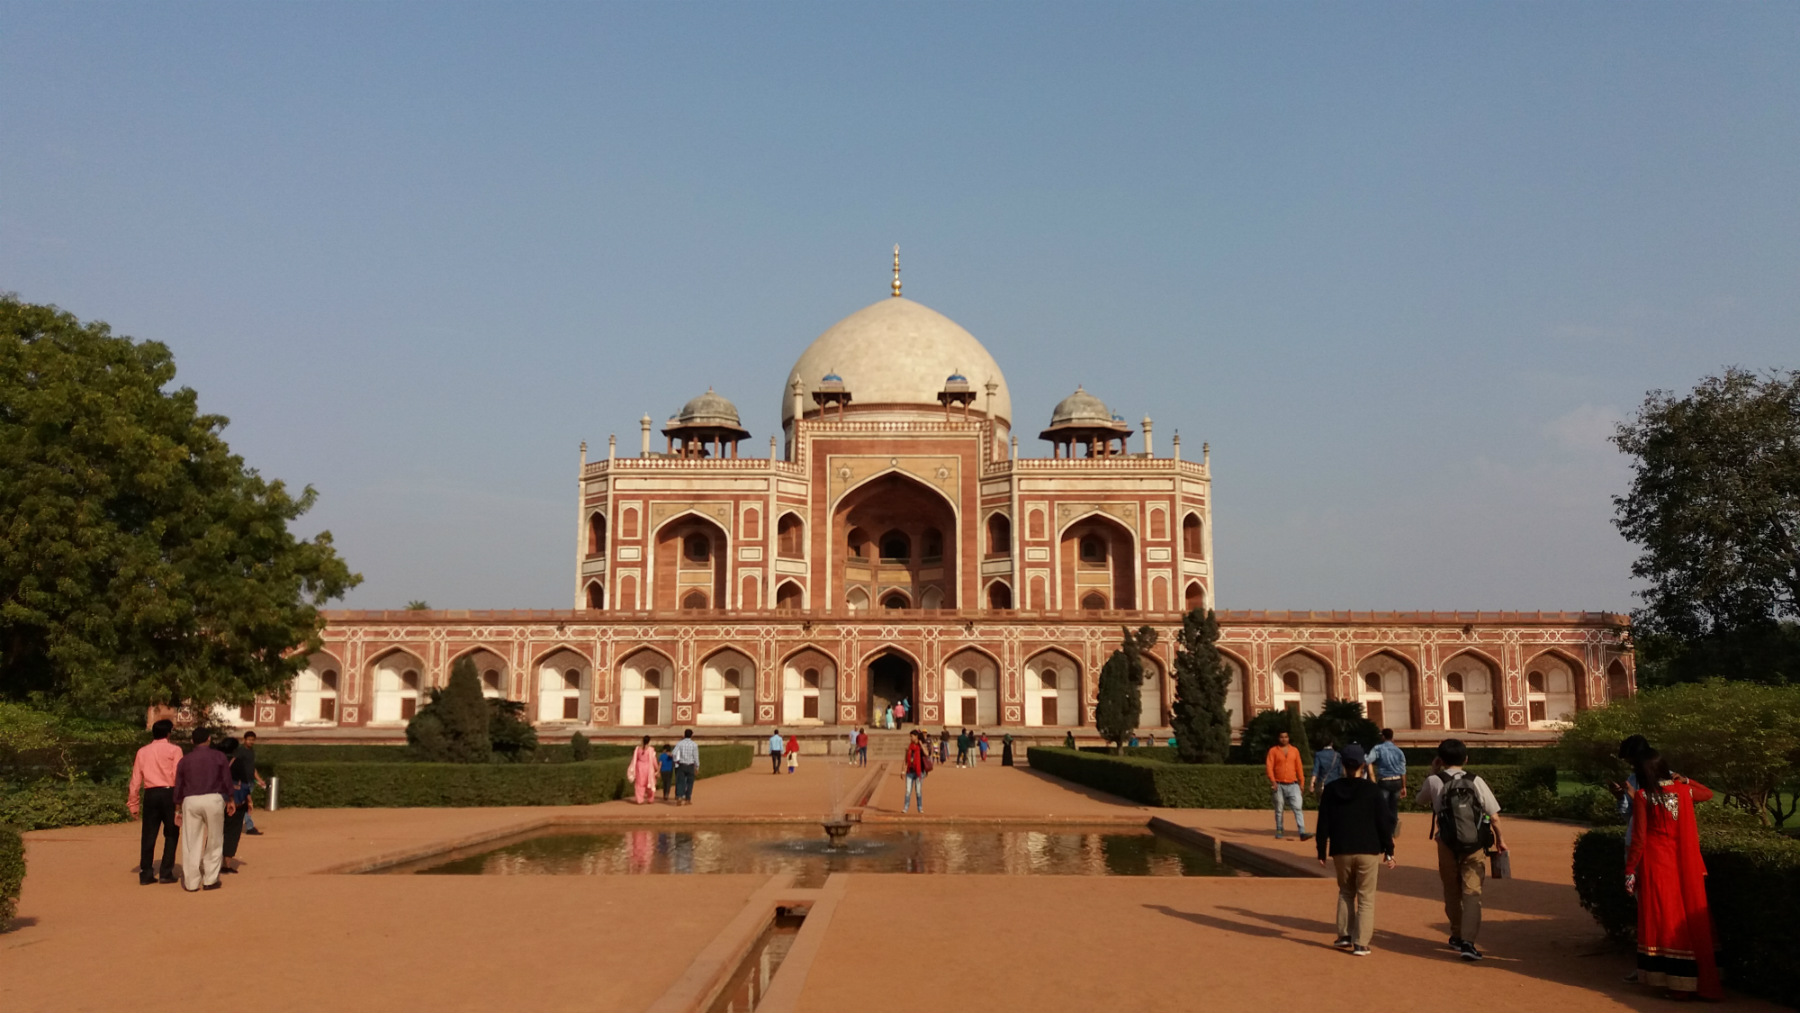 Humayun's Tomb Is The Tomb Of The Mughal Emperor Humayun In Delhi